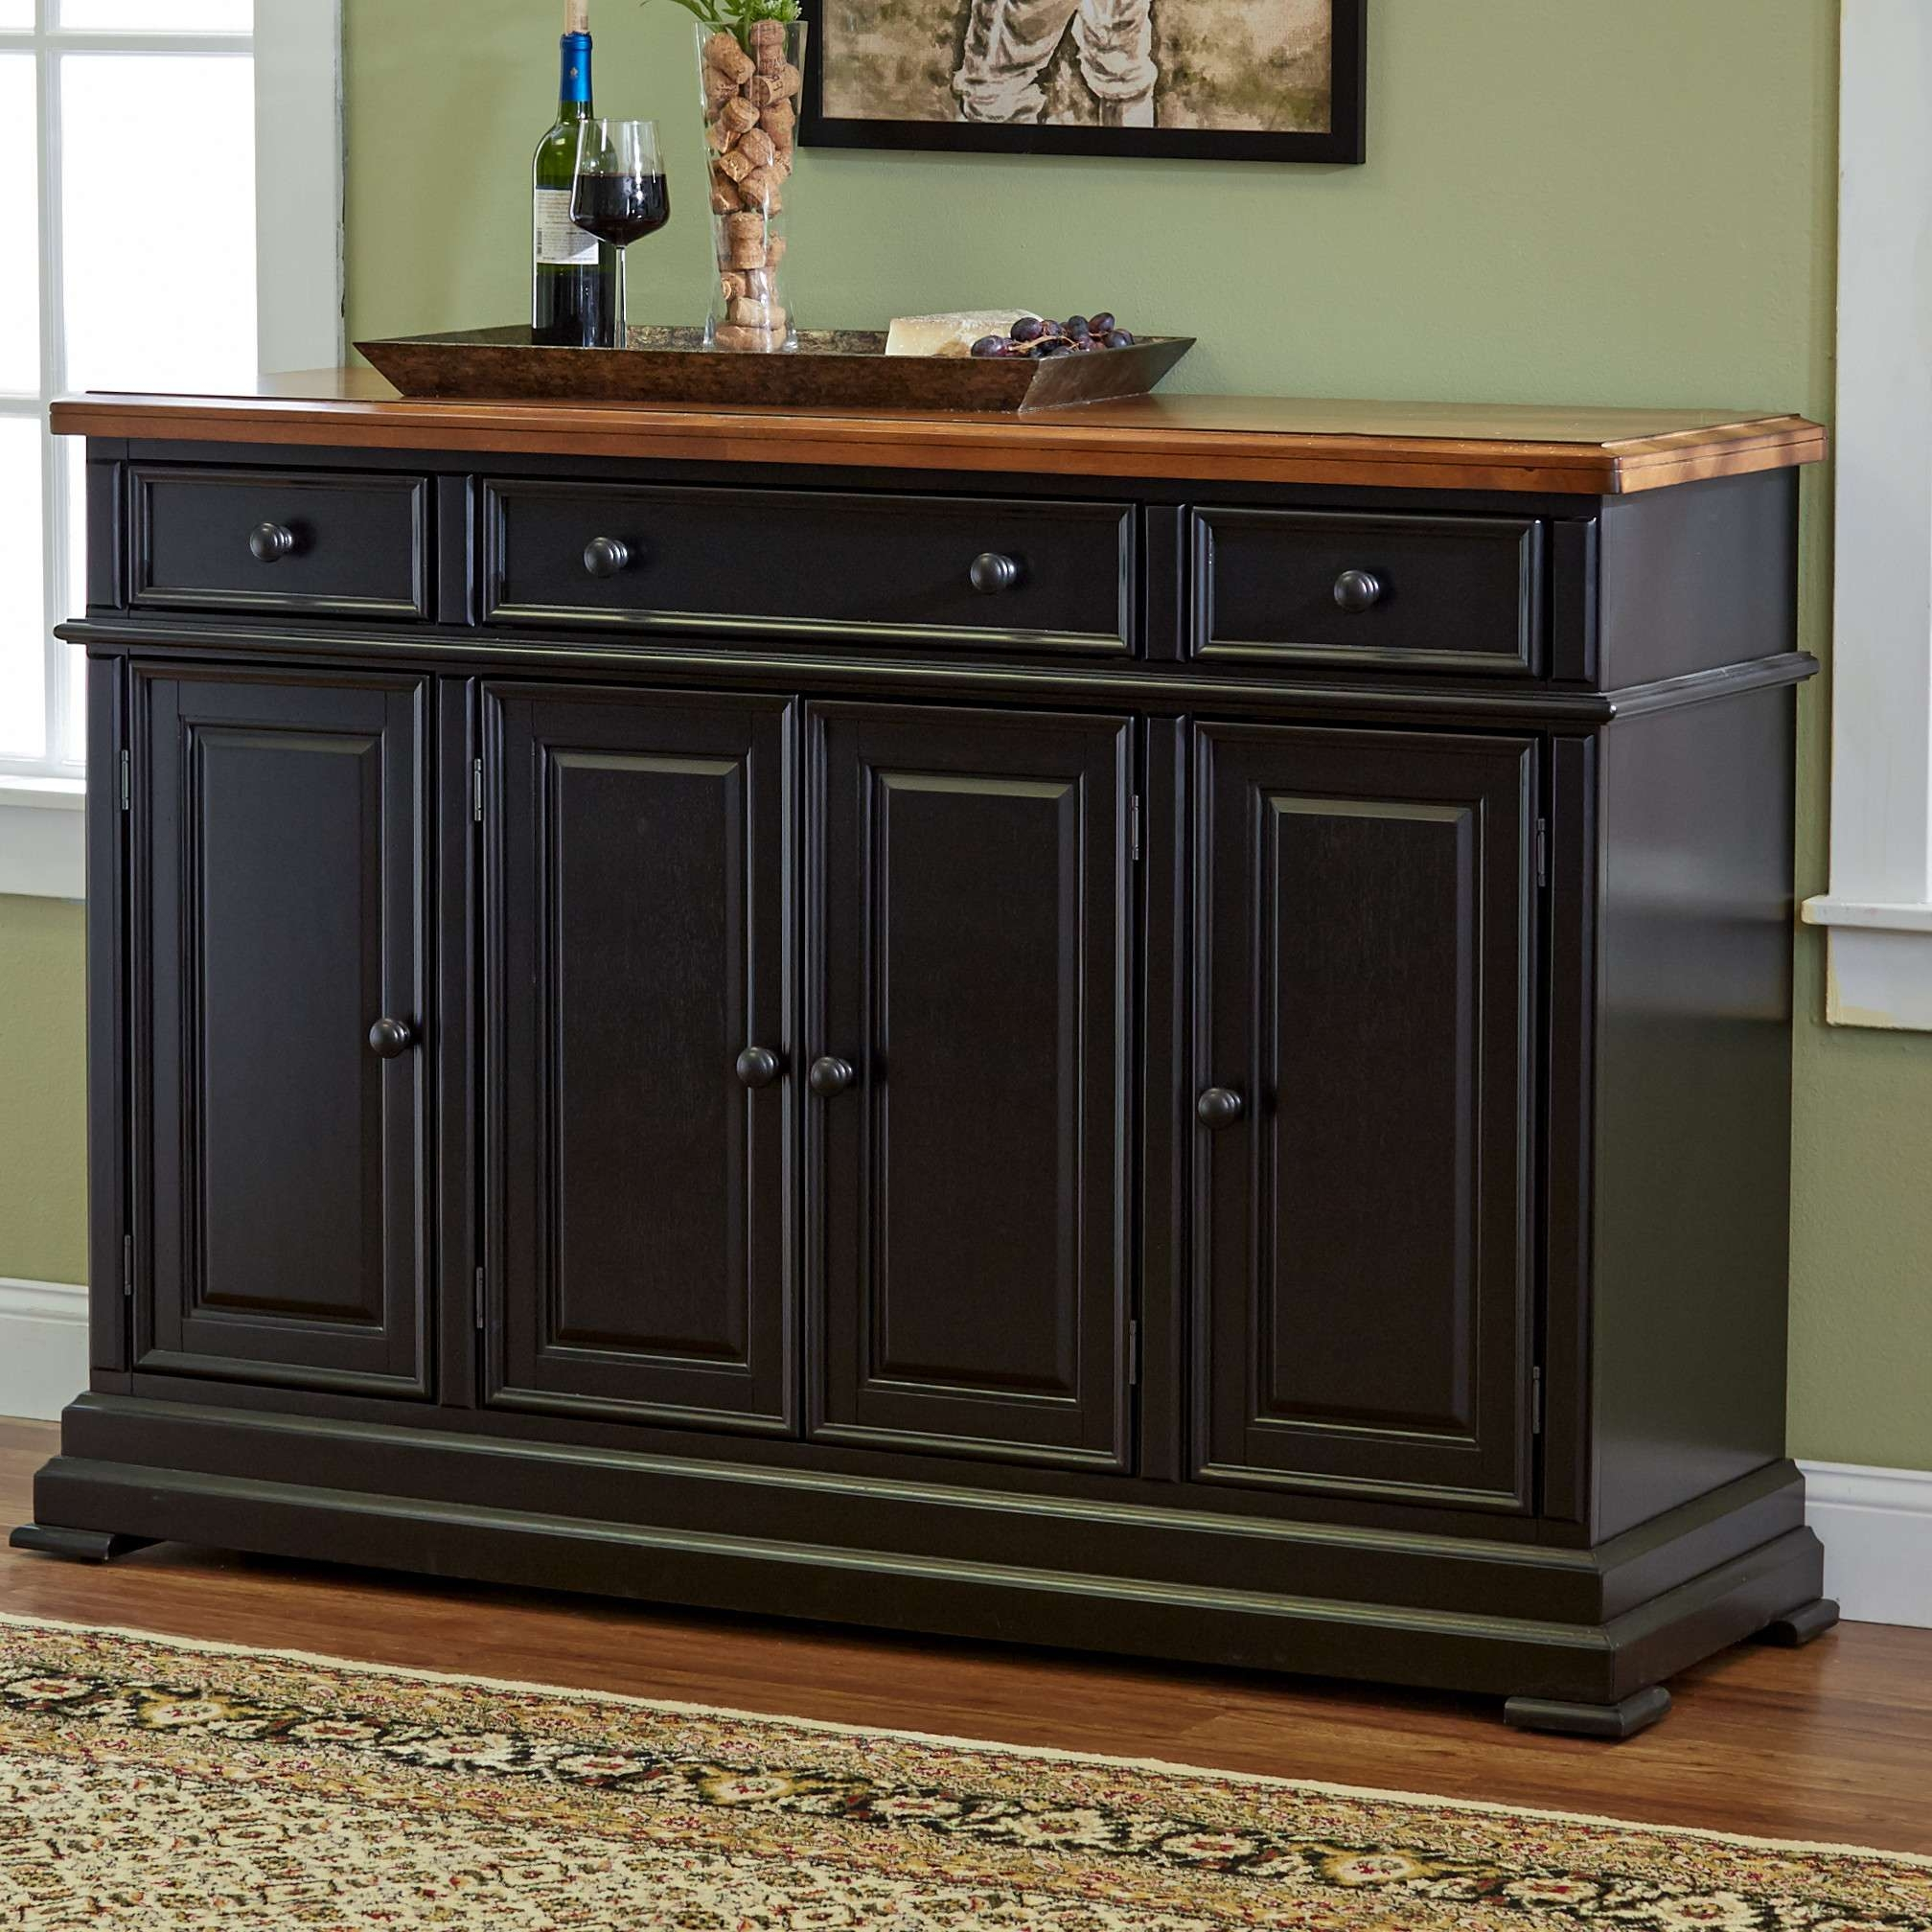 Dining Room Buffet Cabinet Sideboards Buffets Storage Servers 17 Pertaining To Dining Room Sideboards (View 4 of 20)